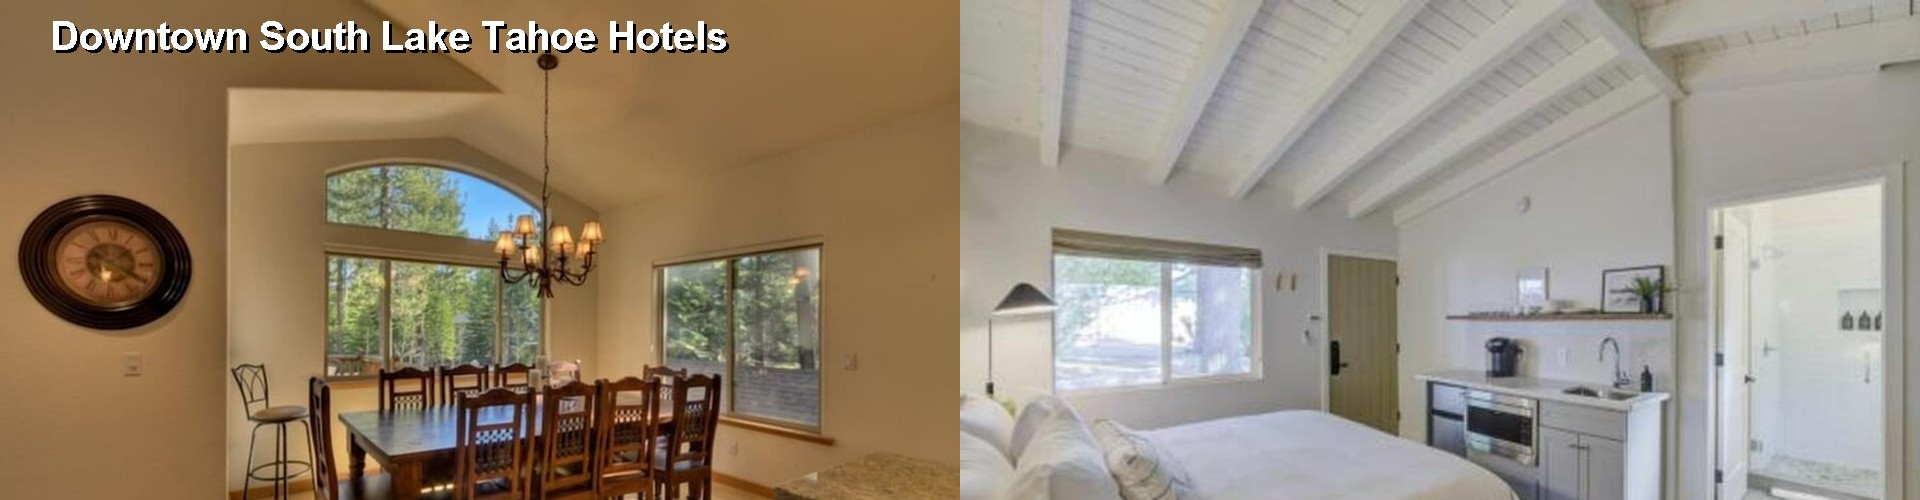 5 Best Hotels near Downtown South Lake Tahoe